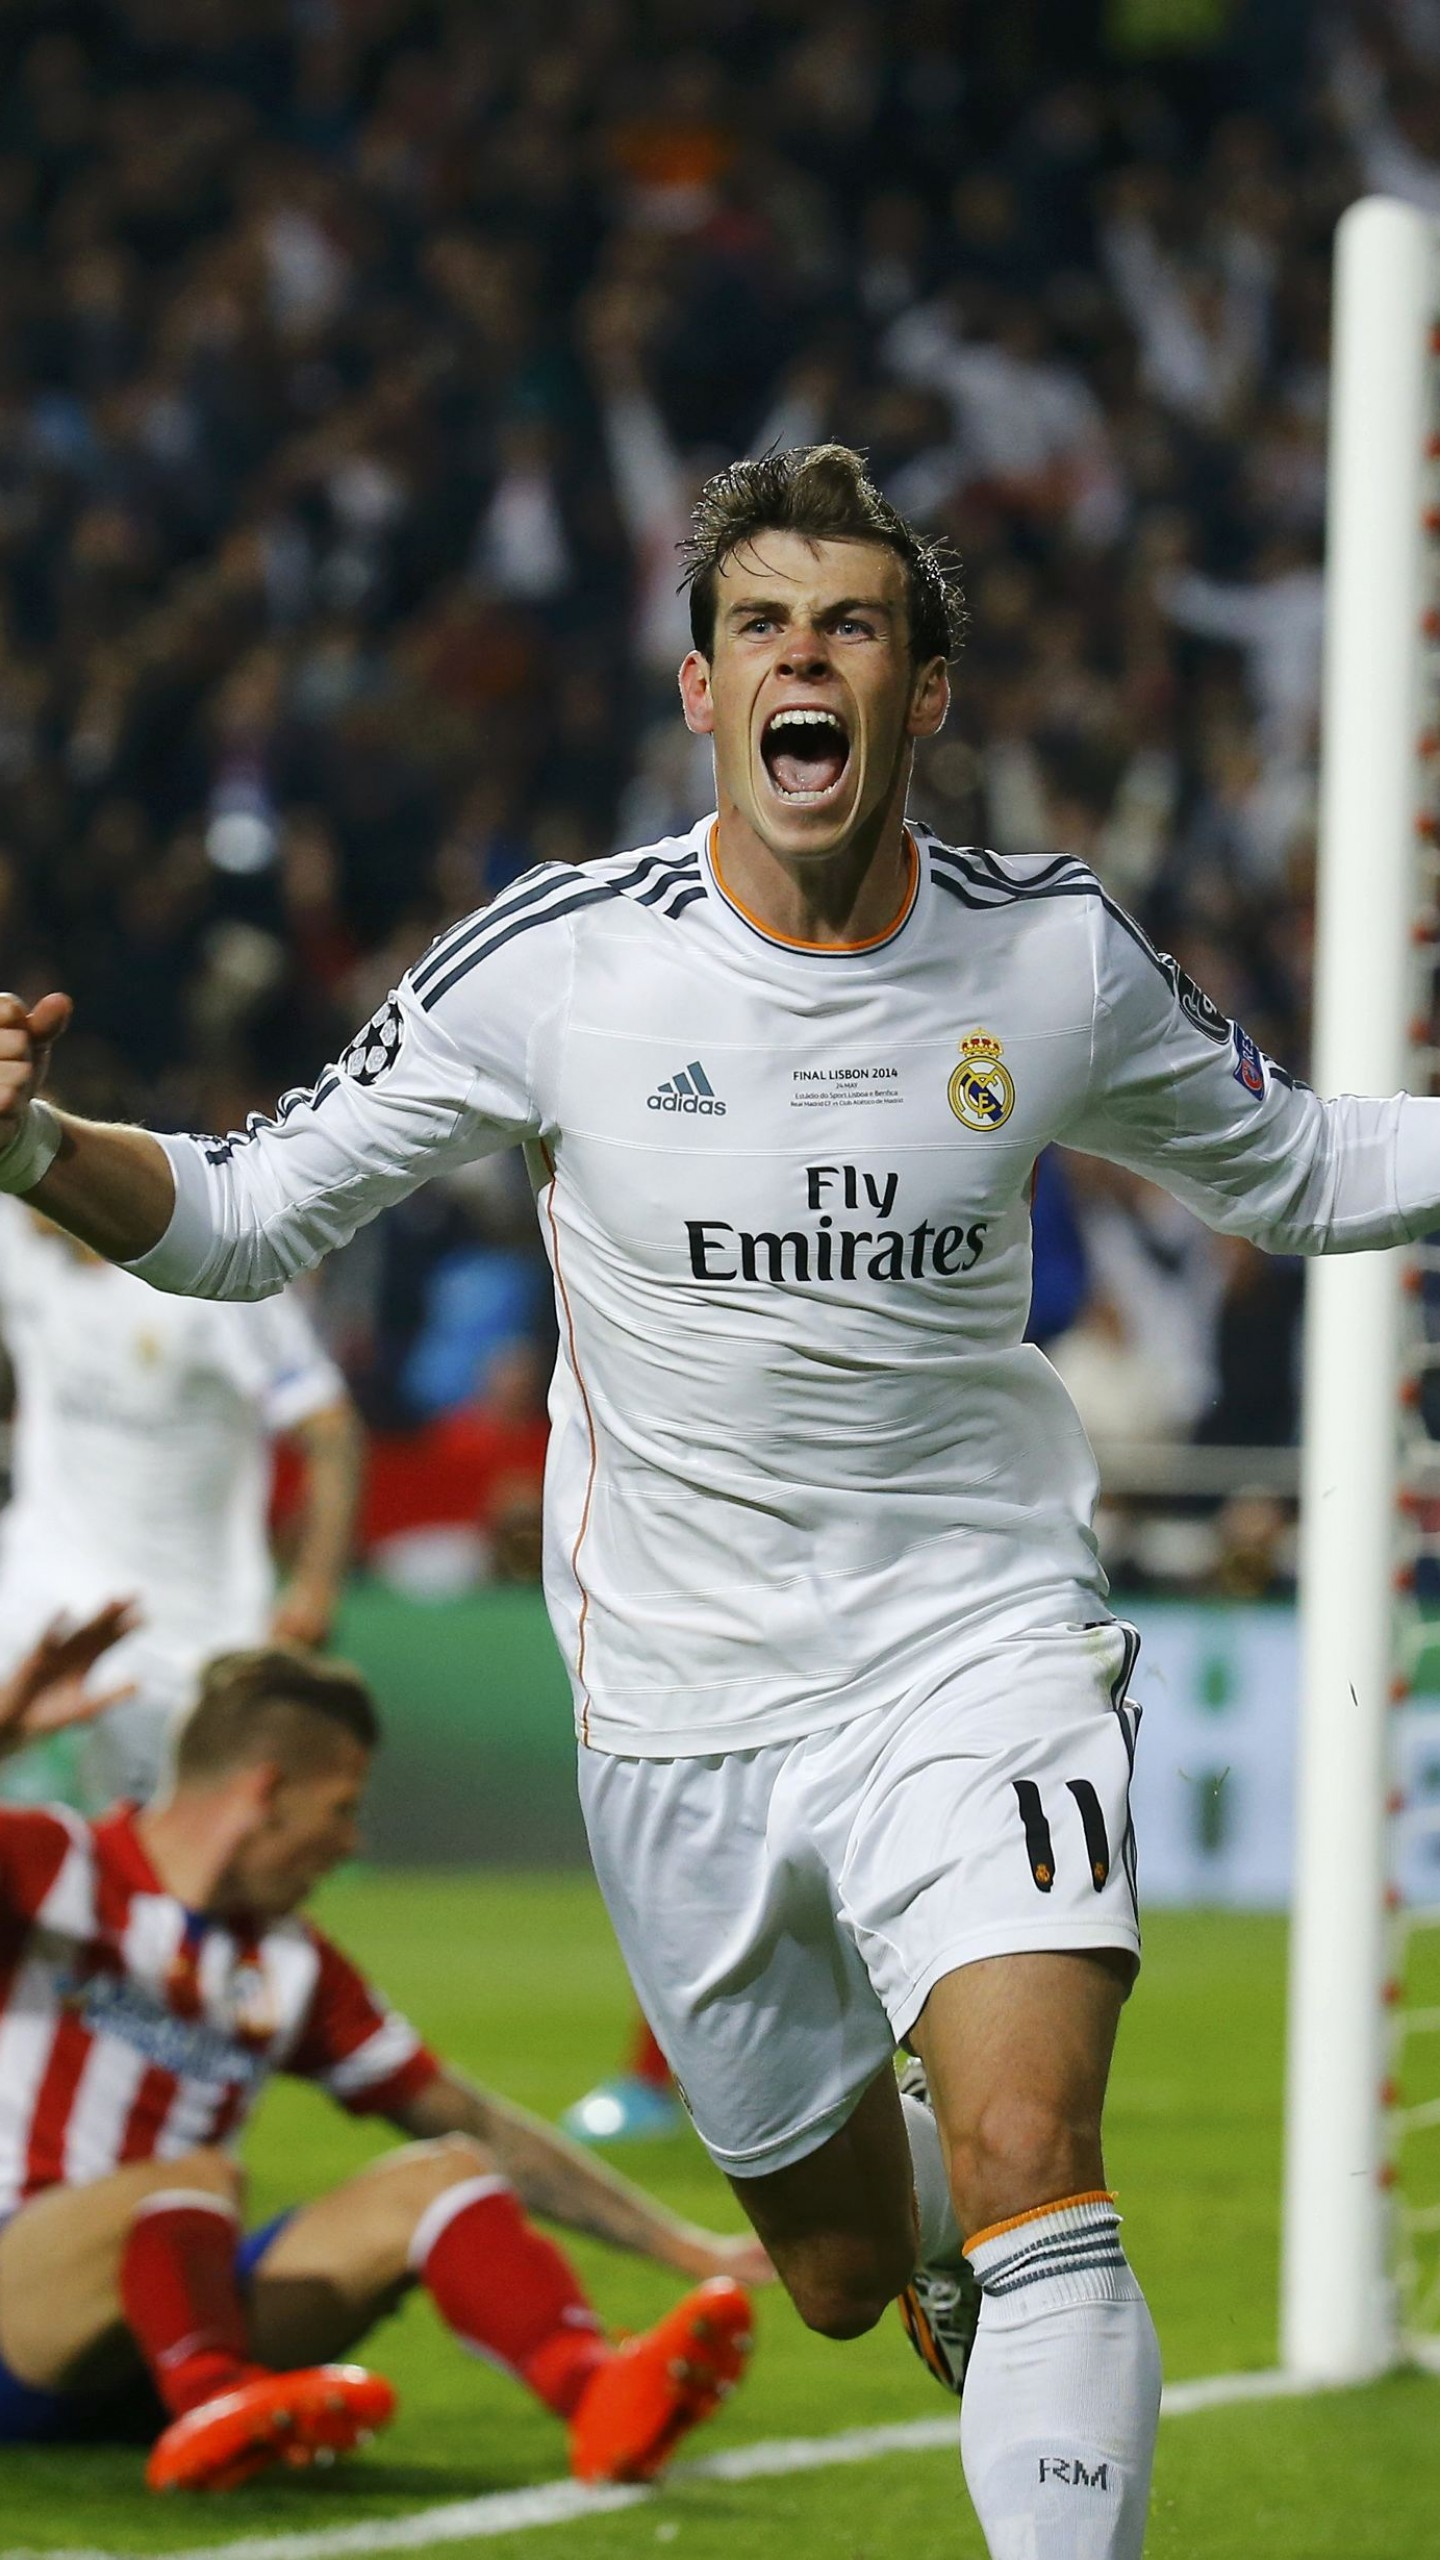 Football, The players Bale, Wallpaper best soccer,  Gareth